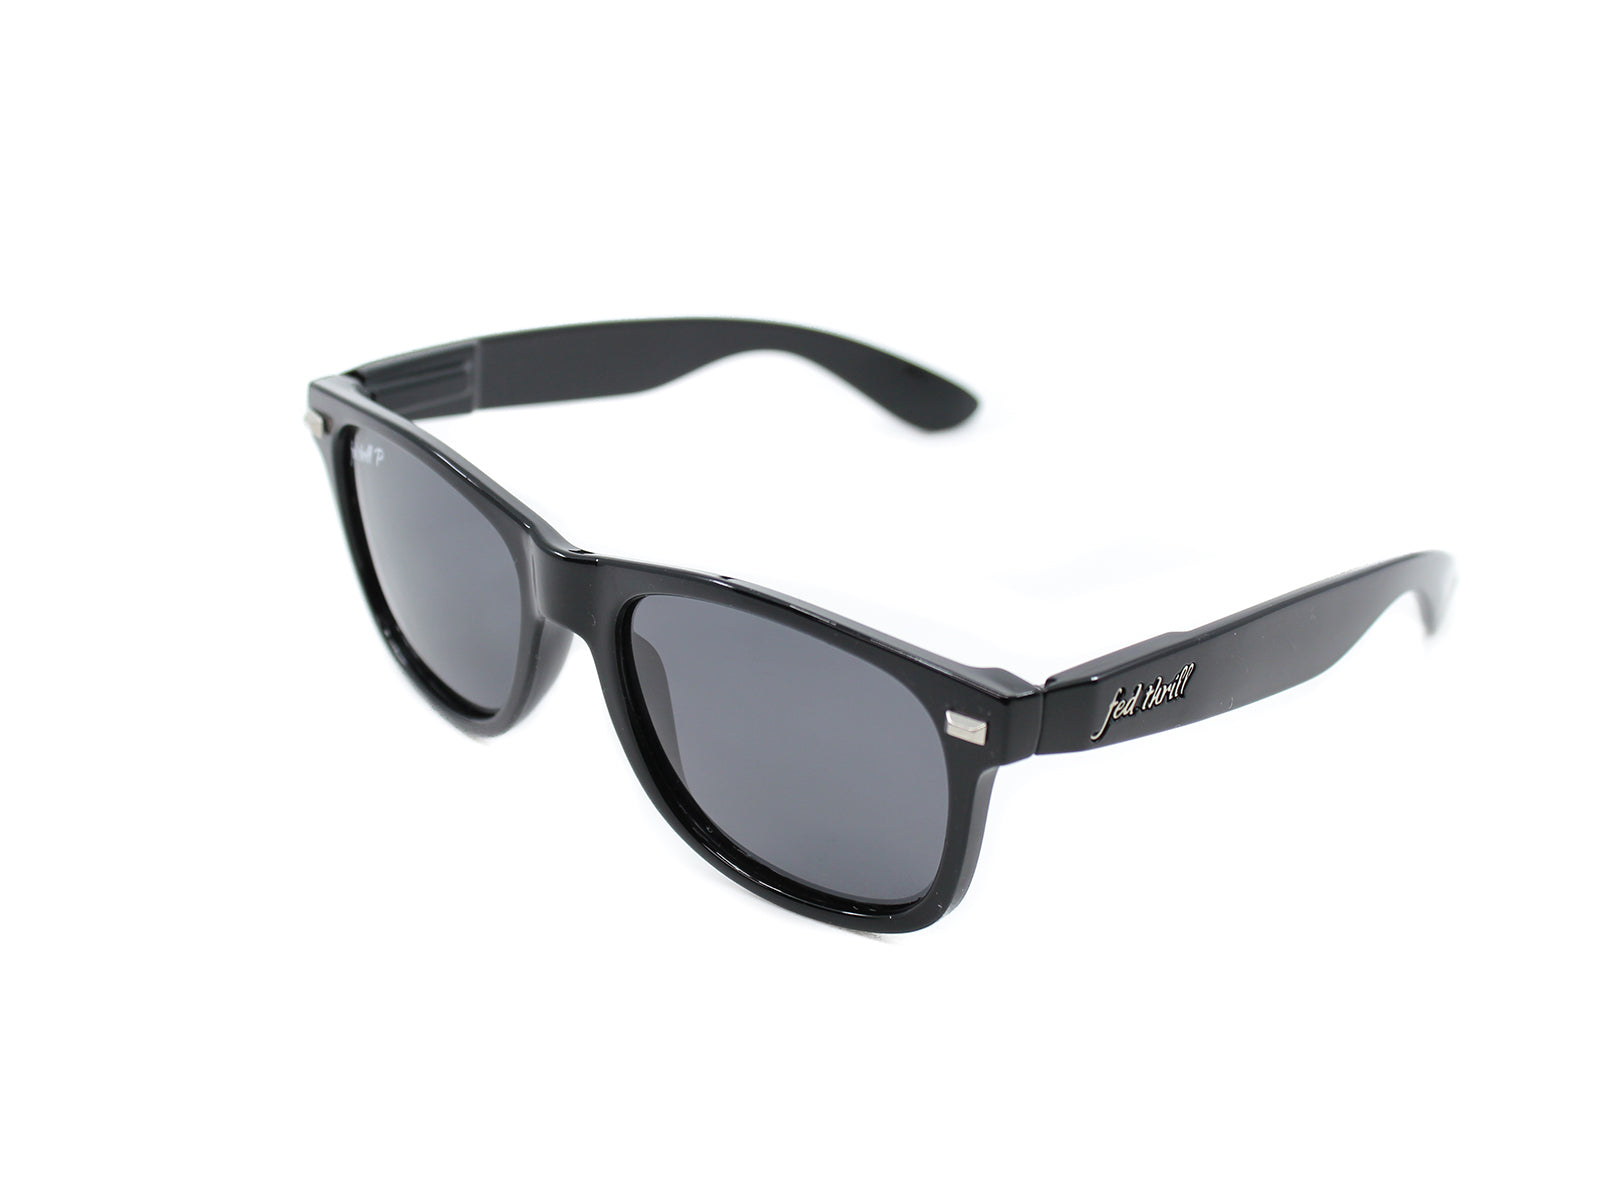 Fultons - Midnight Ops P: Glossy Black / Smoke Polarized